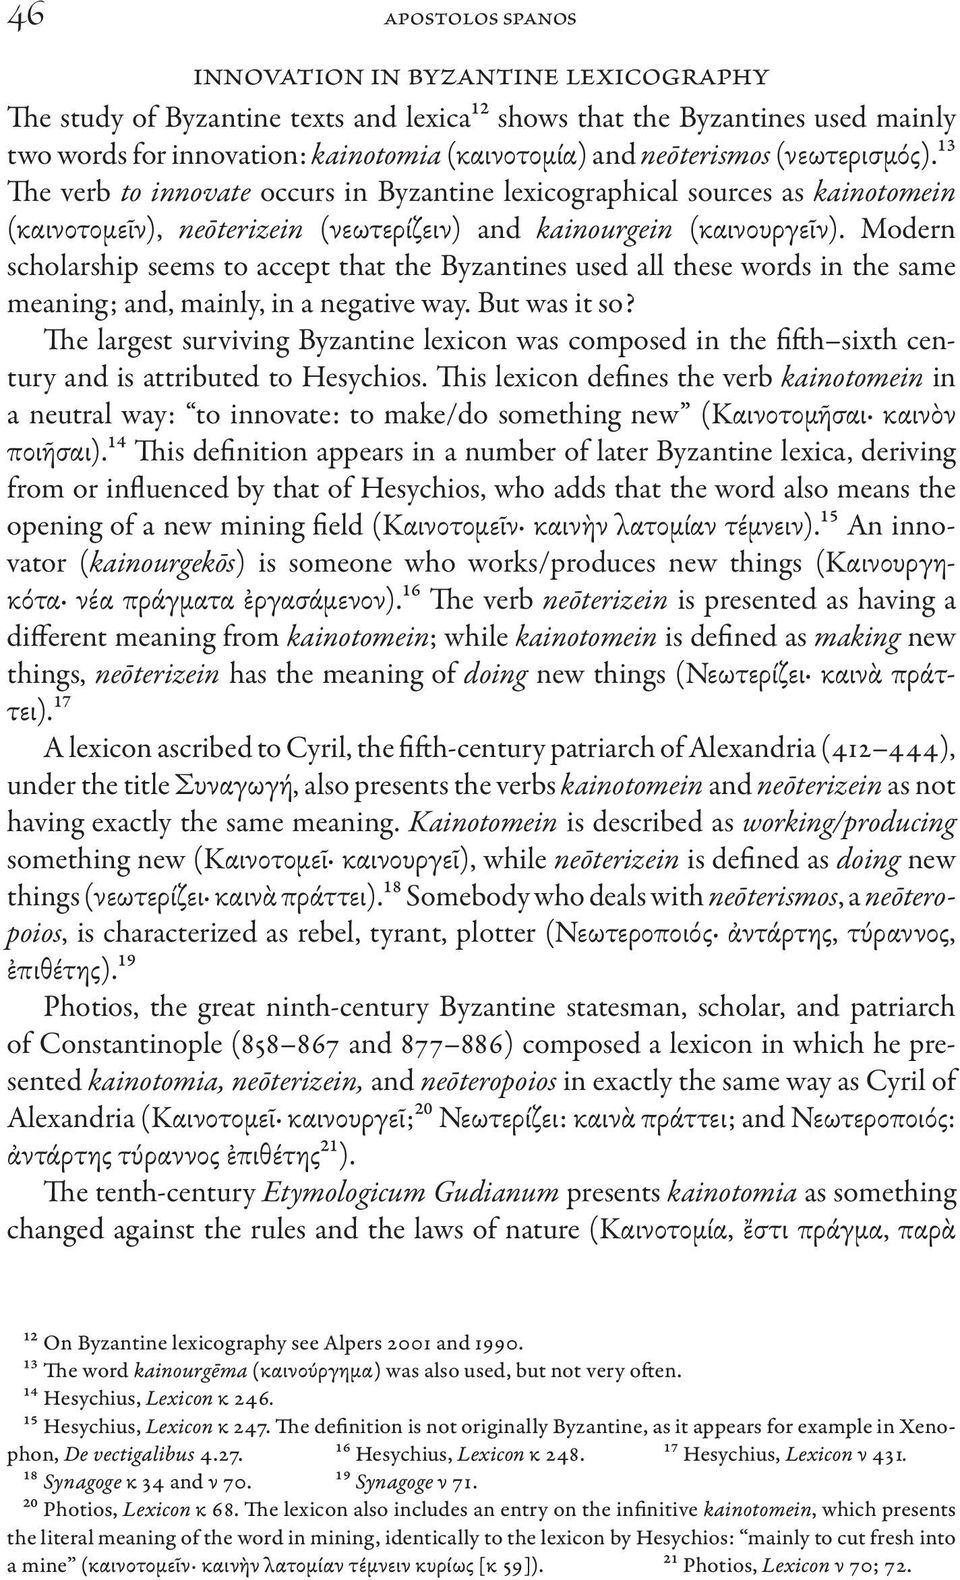 Modern scholarship seems to accept that the Byzantines used all these words in the same meaning; and, mainly, in a negative way. But was it so?